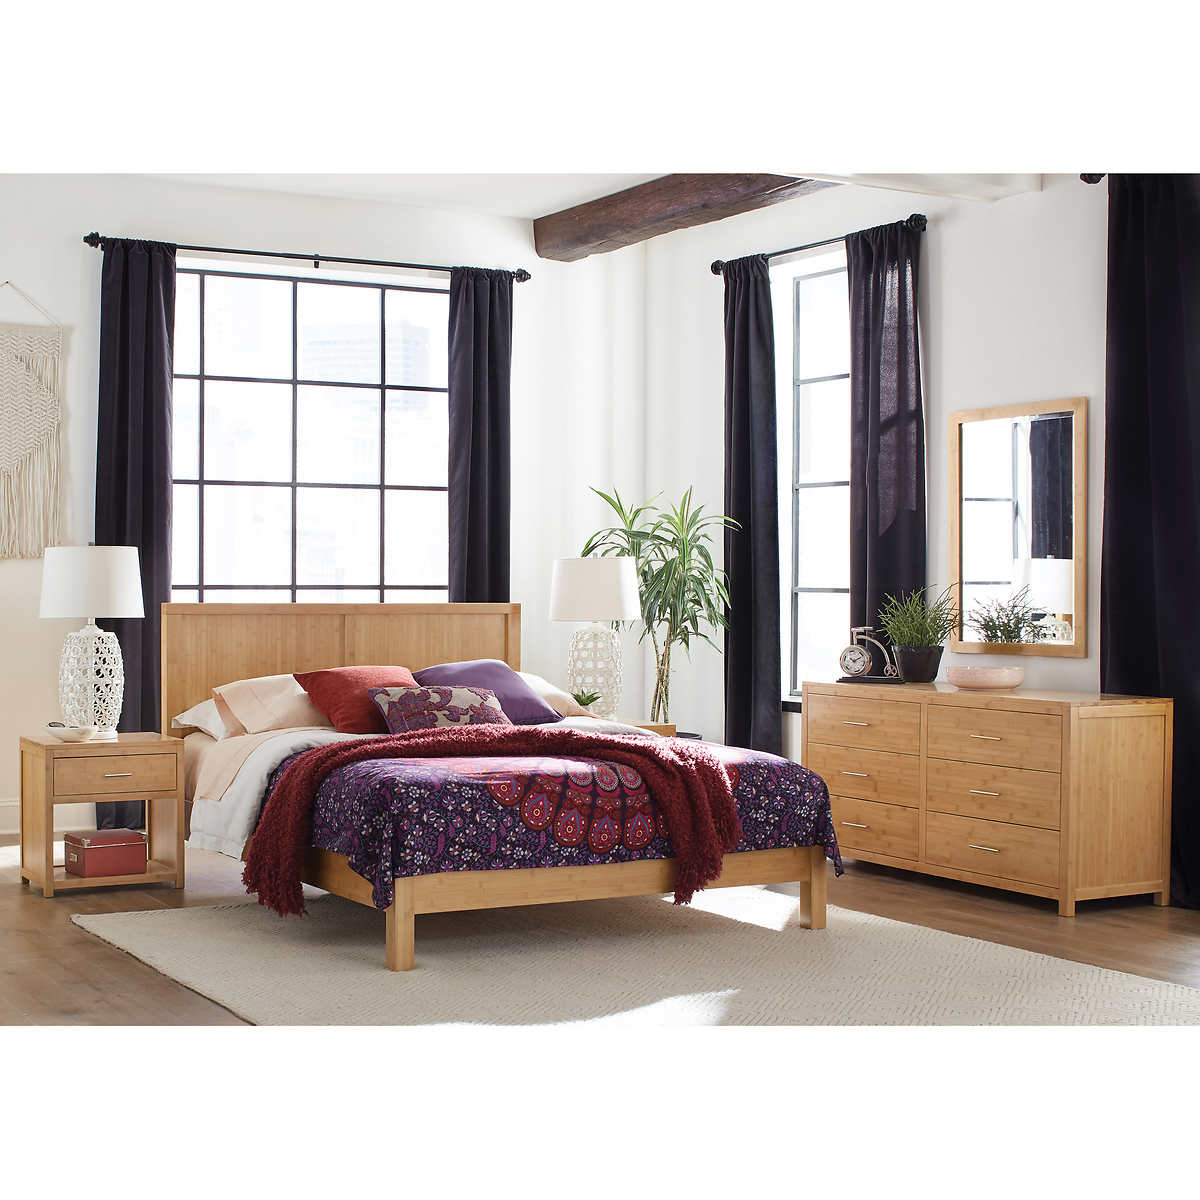 queen bedroom sets  costco - aniko piece queen bamboo bedroom set